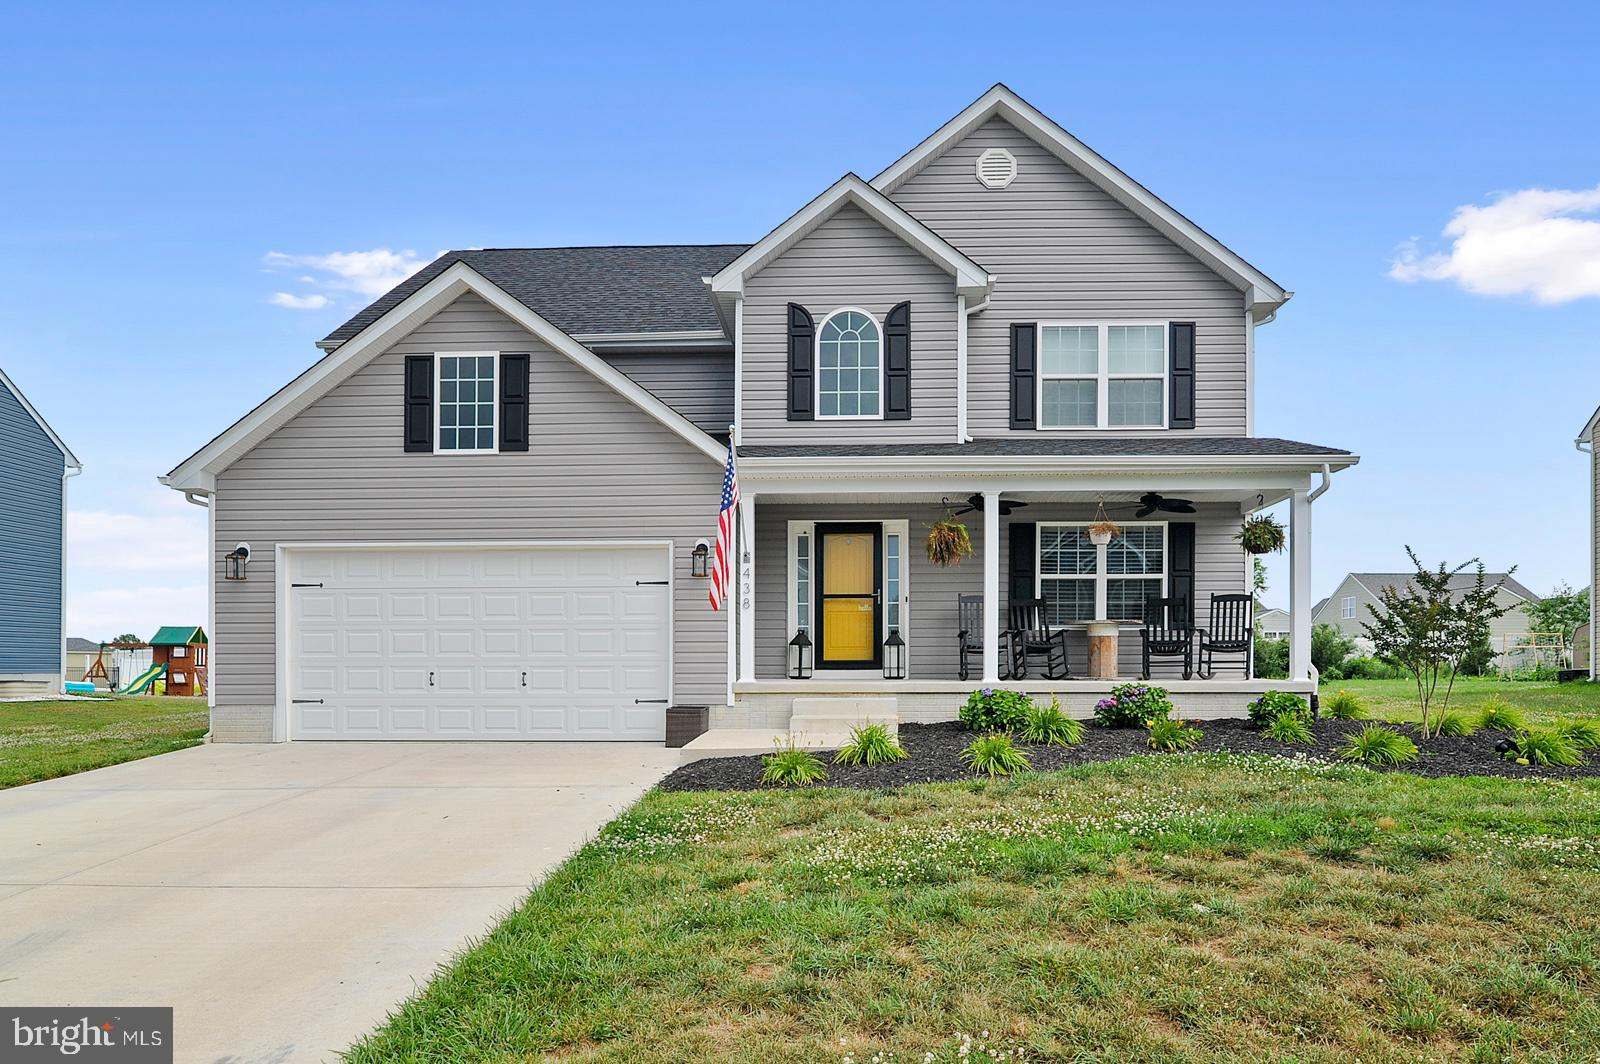 --OPEN HOUSE 07/03/21 - 3:00PM-5:00PM!!!-- Welcome to 438 W Birdie Lane in Magnolia! Built in 2018 and located in Jonathans Landing just walking distance from the golf course and clubhouse. This home offers a main level open floor plan complete with a formal dining room, oversized kitchen and pantry,  access to the garage and basement along with a 22 by 14 great room and 1/2 bathroom.  The entire first floor has Luxury Vinyl Plank flooring; easy for clean up and very pet and kid friendly! Kitchen upgrades include stainless steel appliances, a walk-in pantry, ice machine, and granite countertops. The second floor combines all four bedrooms along with an extended laundry/mud room.  The primary bedroom is spacious and gives access to lots of natural light. A freestanding tub, ceramic tile with glass door shower, upgraded plumbing and light fixtures with his and hers separate vanities are all included in the primary bathroom. This home is located on .33 acres and includes a front porch with double fans, a back Trex deck, concrete patio and gravel area with above ground pool. Schedule your tour ASAP as this home won't last long! Professional photos will be uploaded on 07/02/2021.